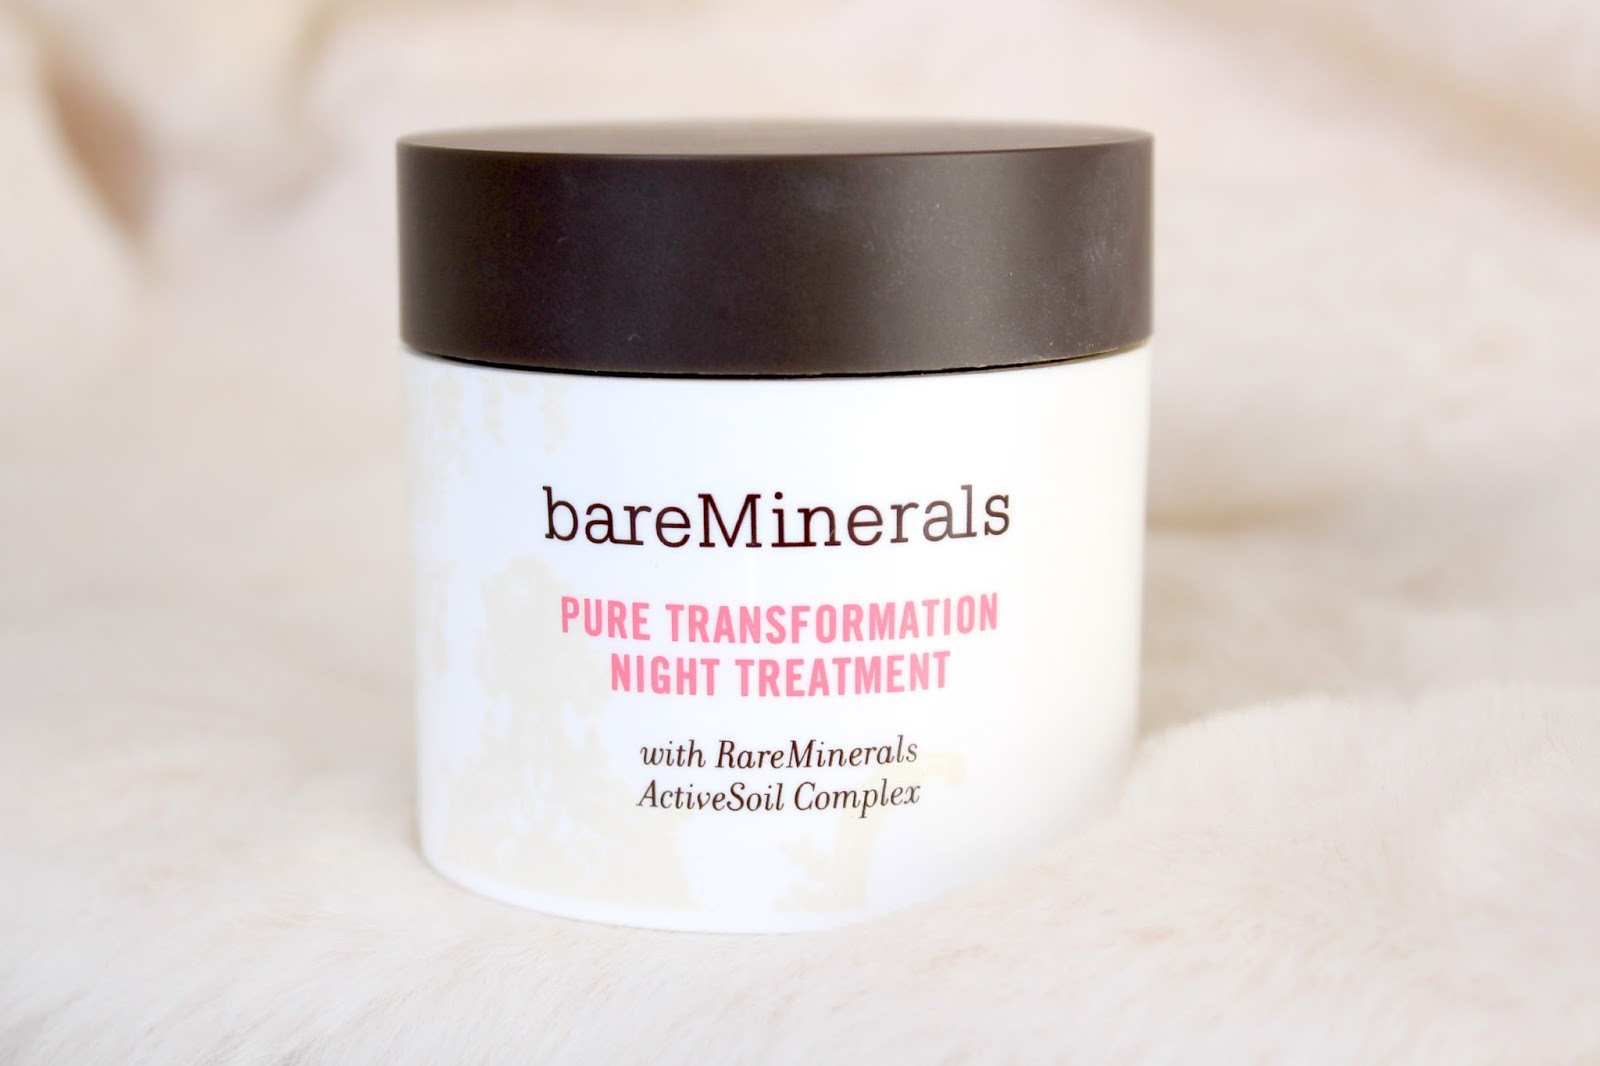 Bare Minerals Pure Transformation Night Treatment Review